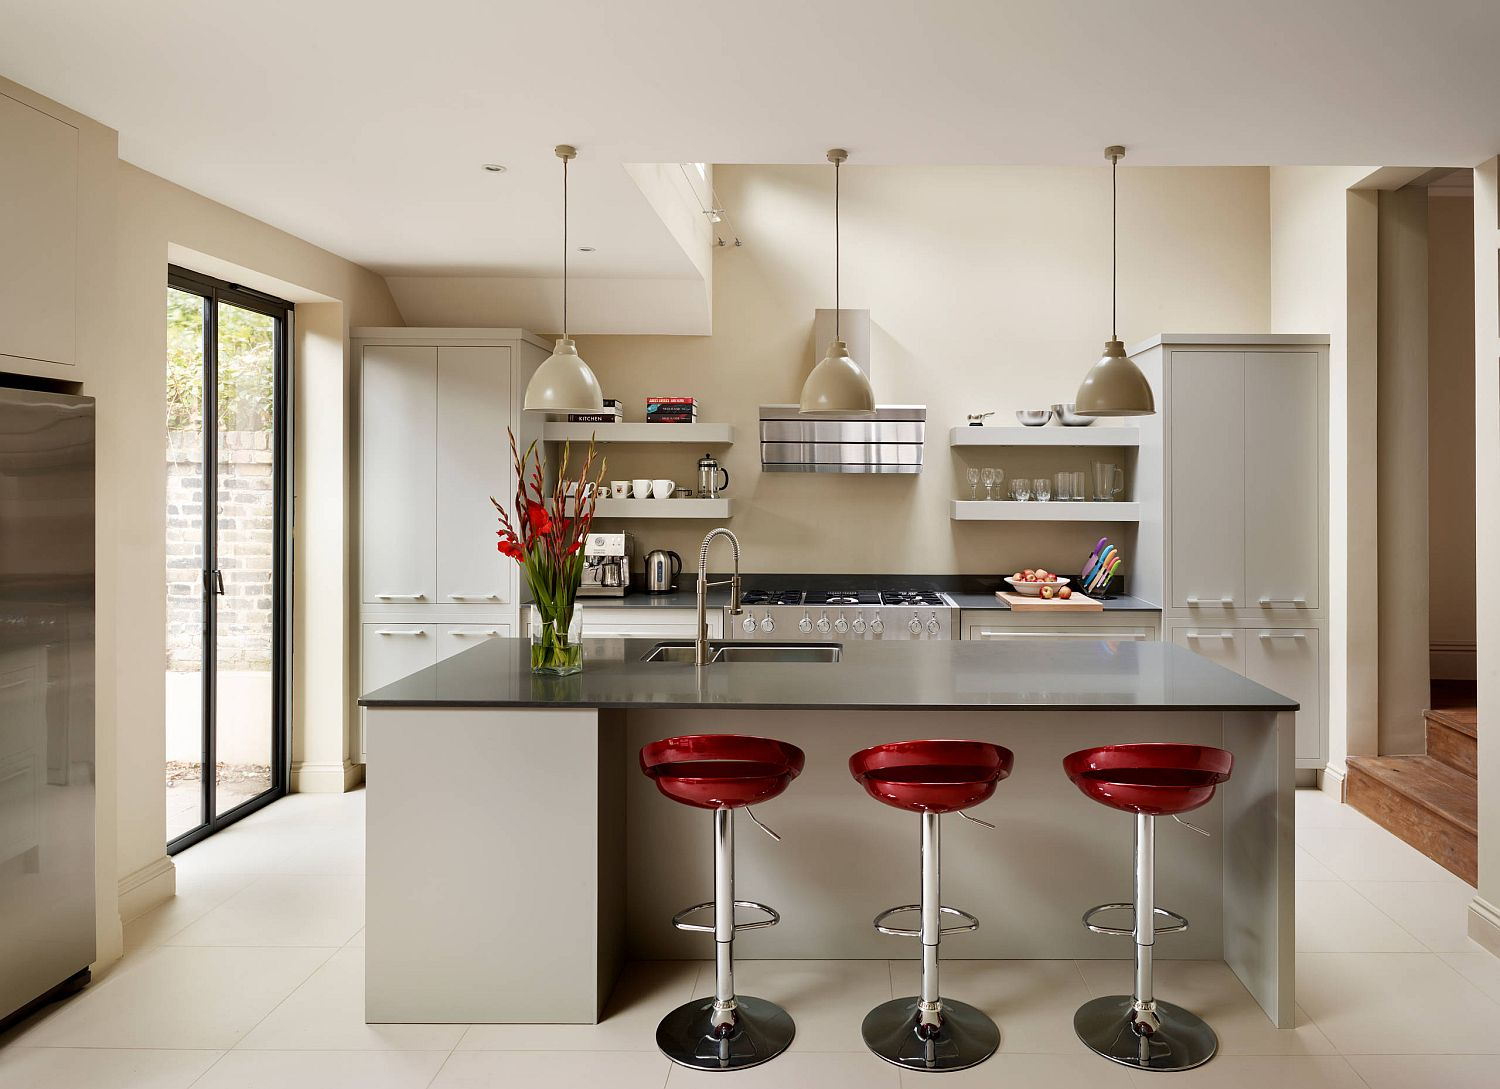 Feisty And Trendy Awesome Red Bar Stools And Chairs That Steal The Show